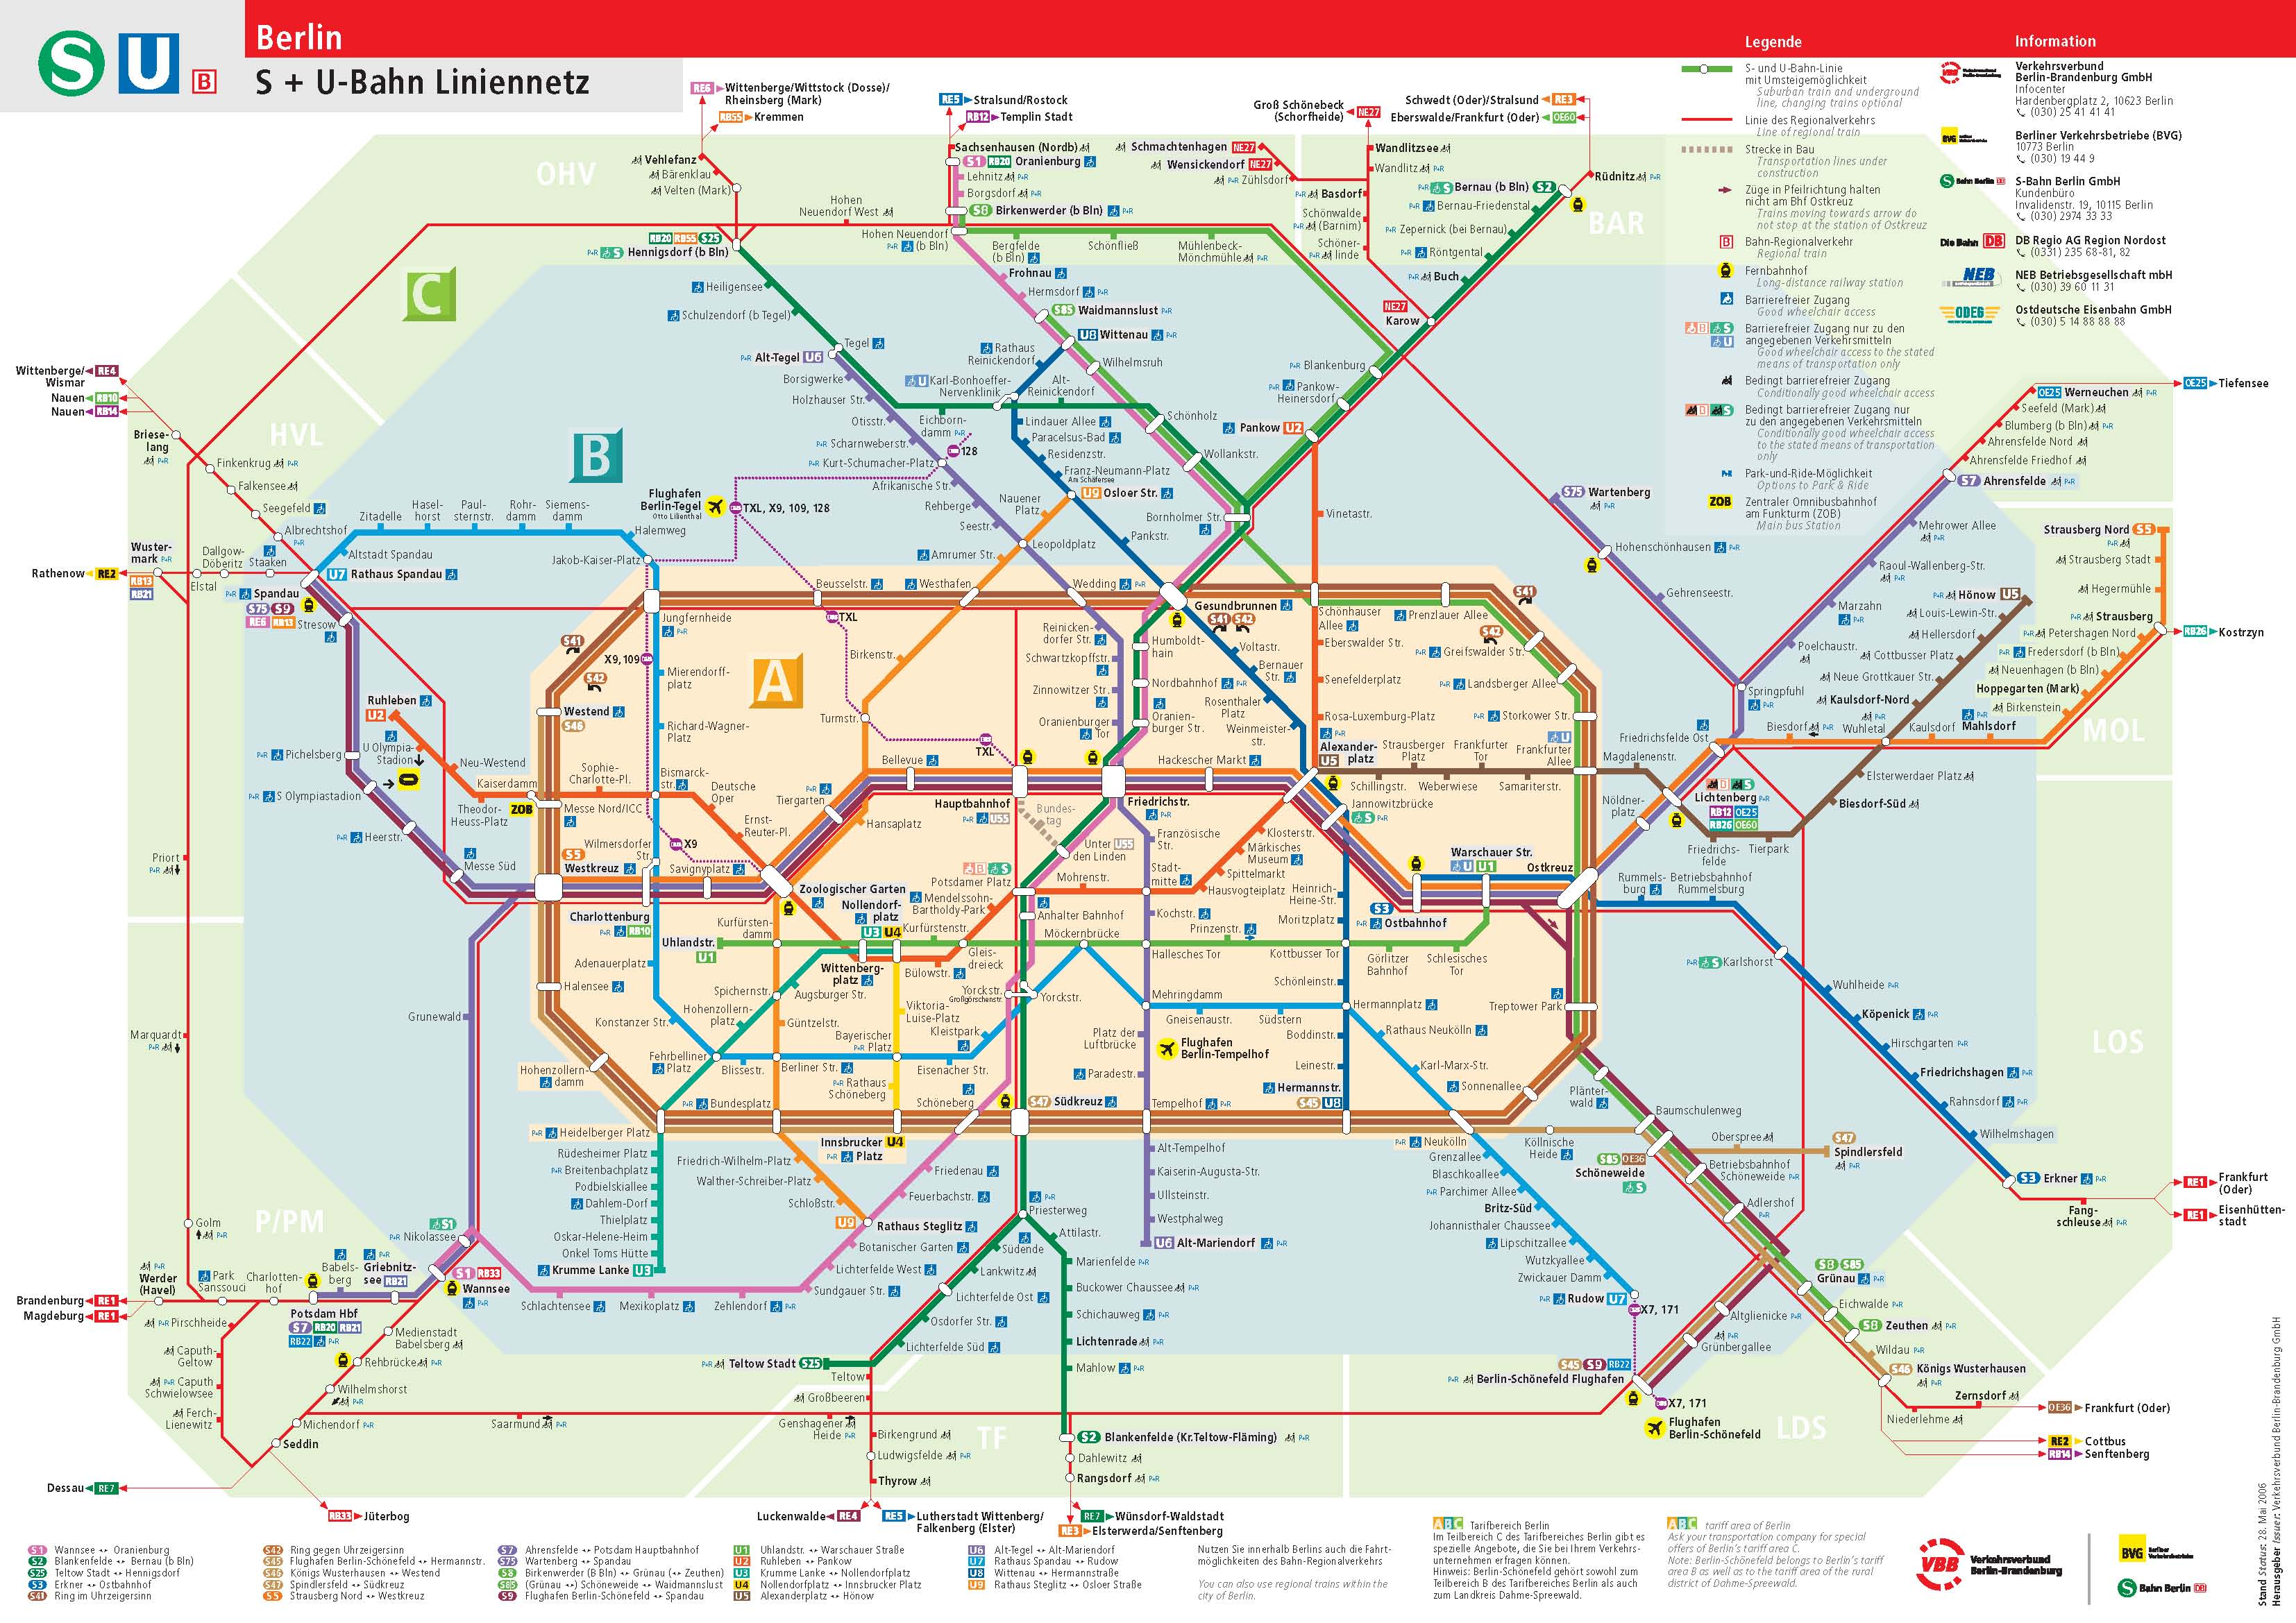 Maps Update Map Brussels Train Stations Maps Update Map of – Train Stations Brussels Map